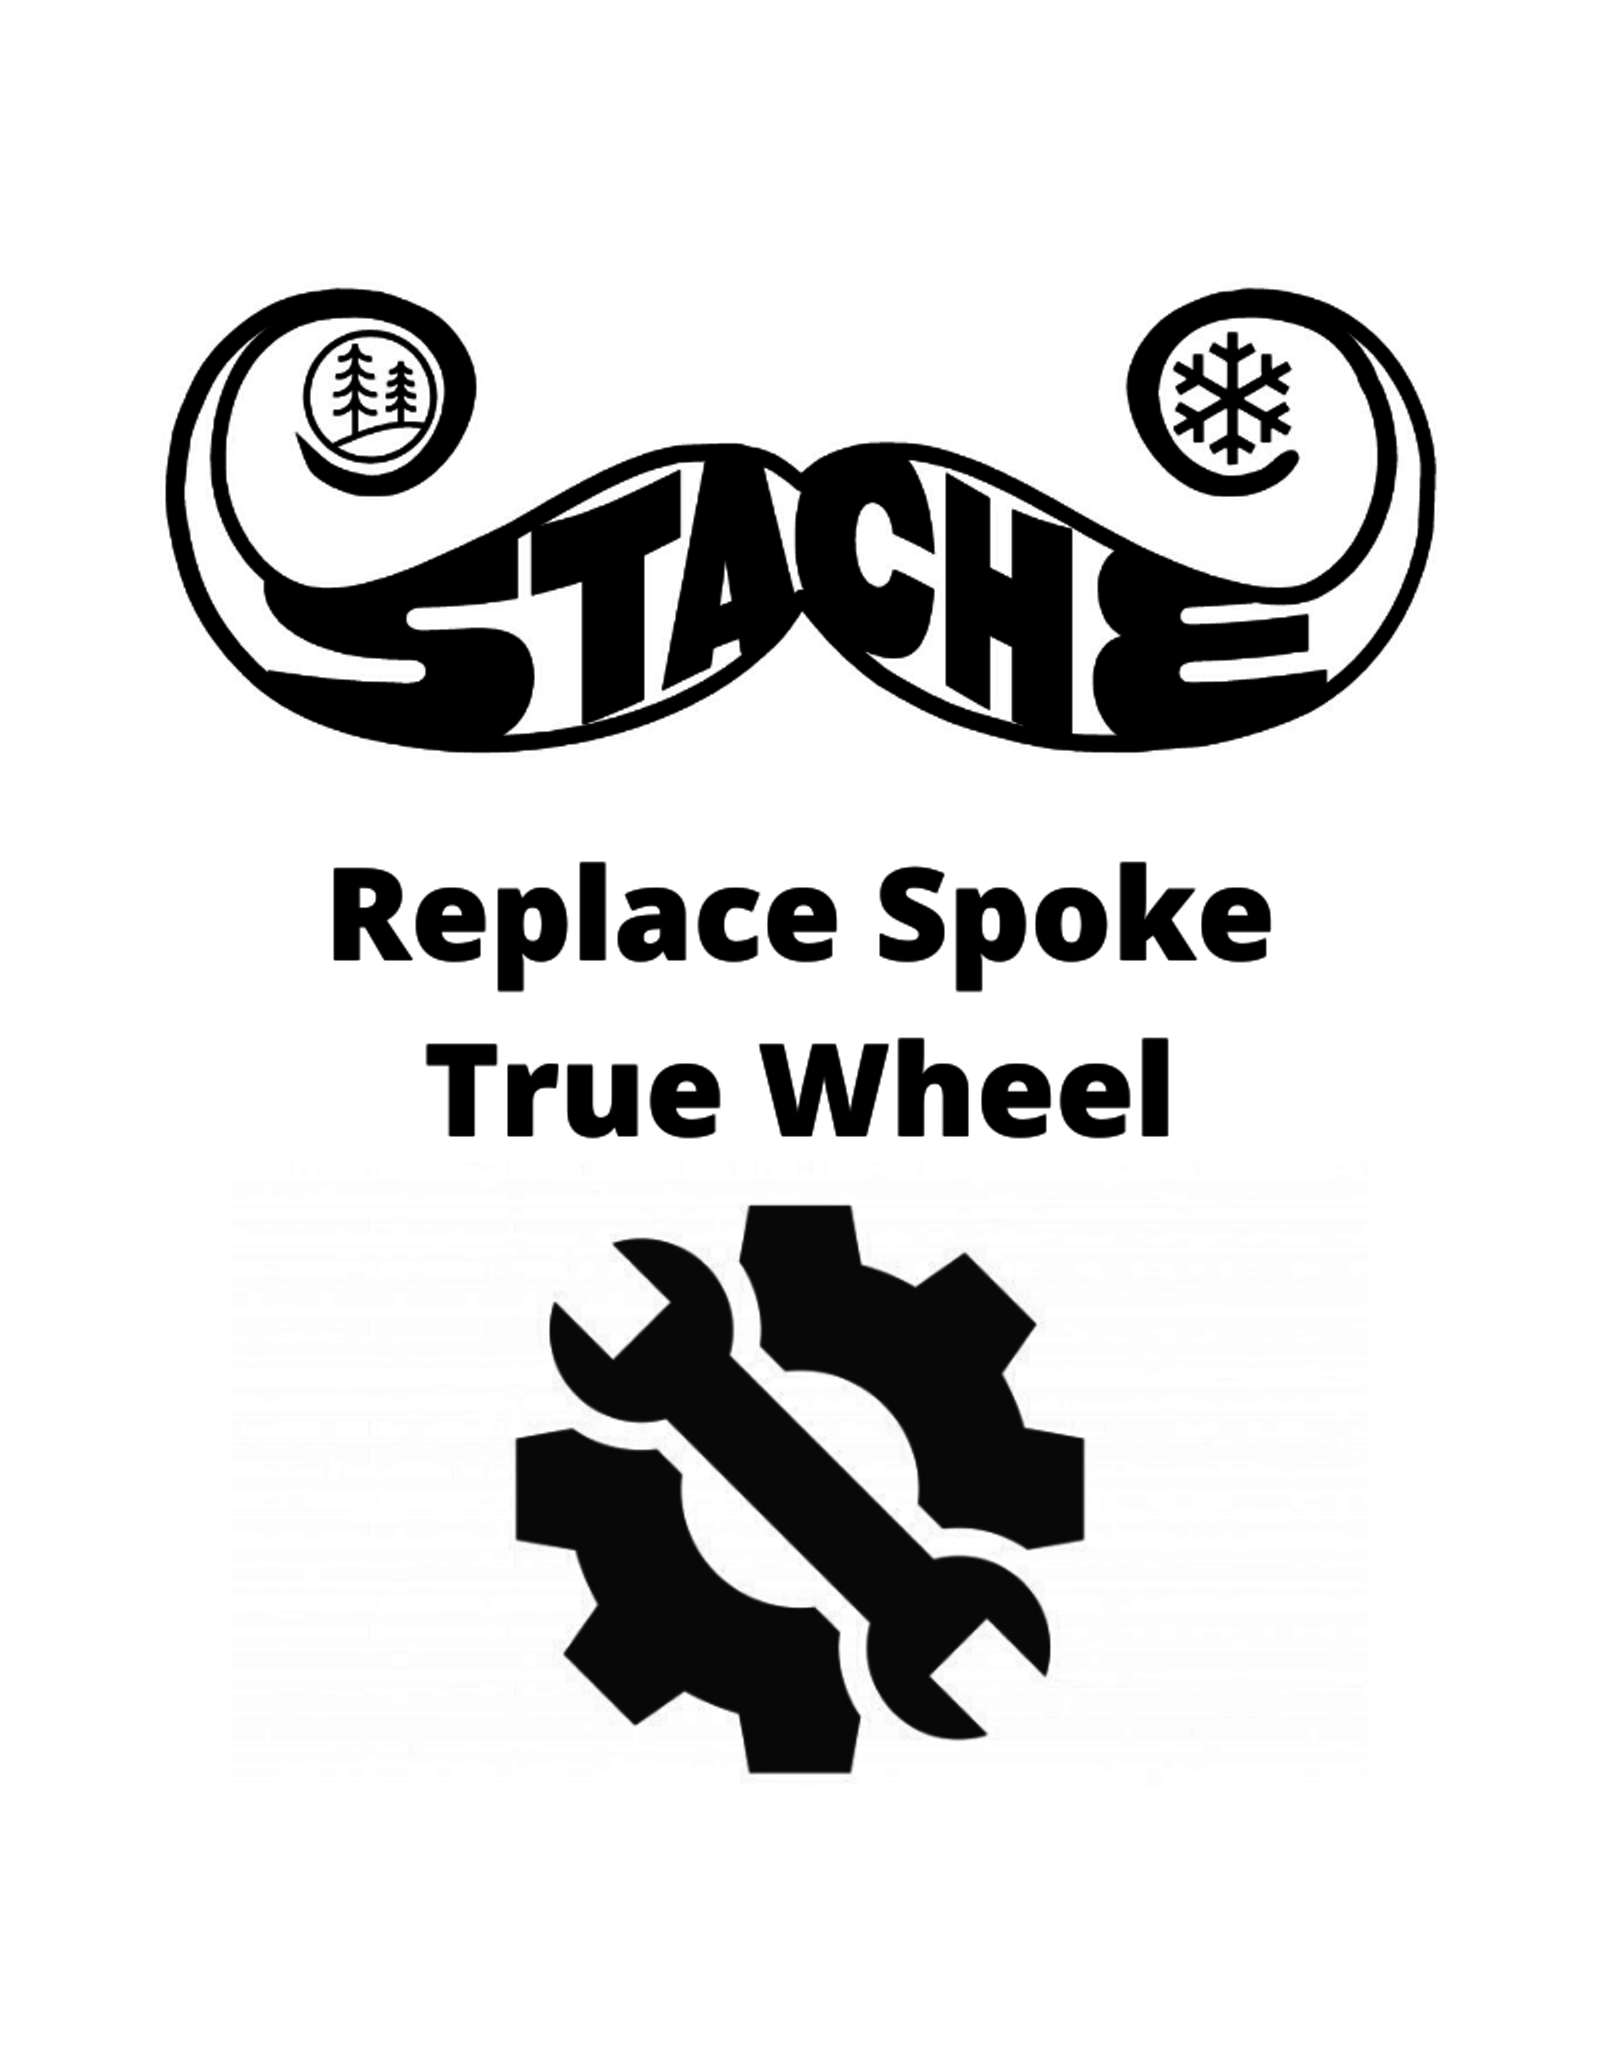 Replace Spoke True Wheel